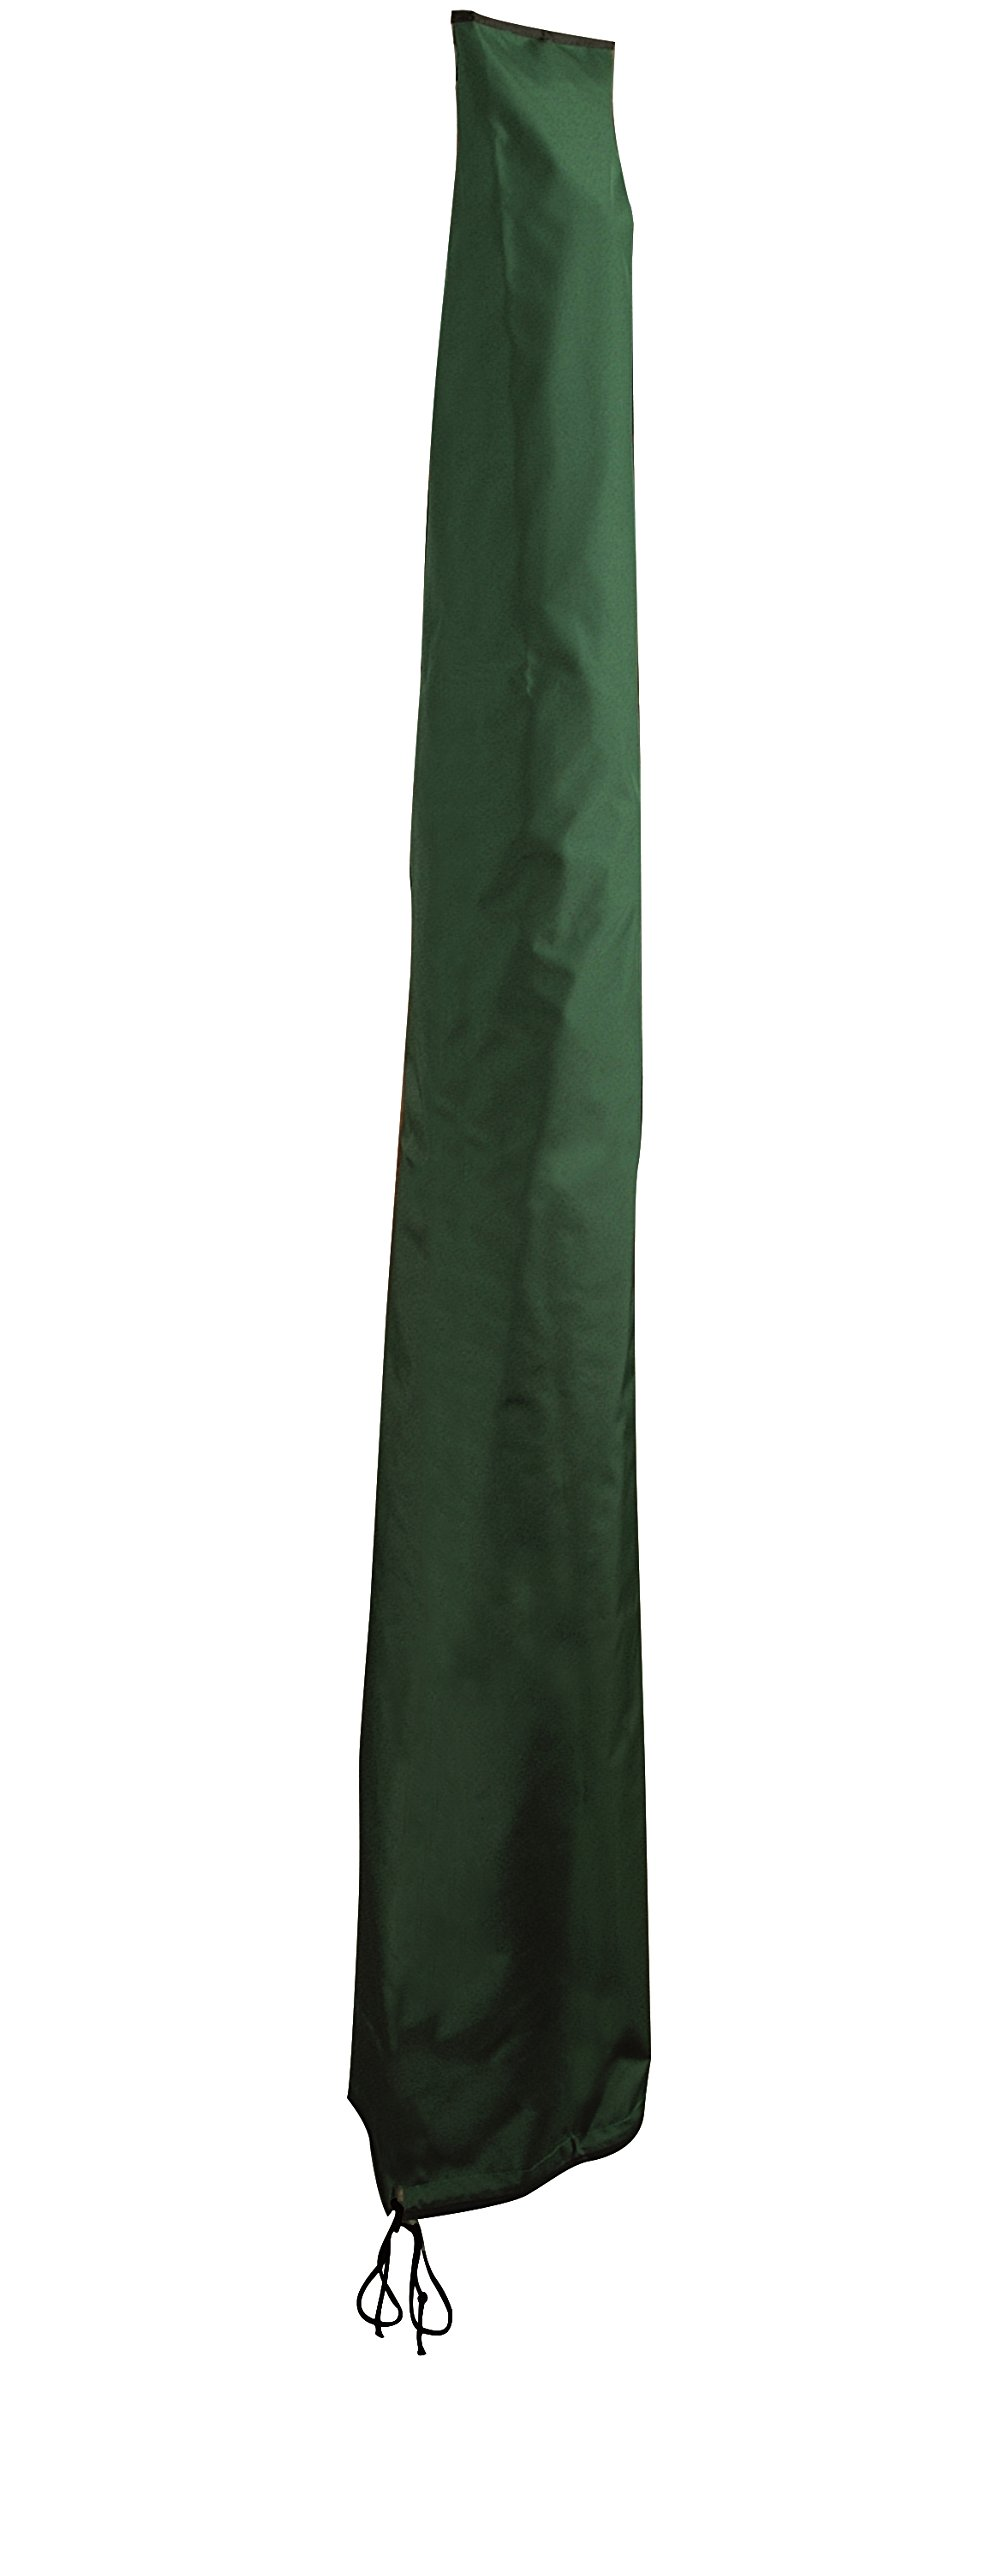 Bosmere C597 Cover for 14-1/2-Foot Wide Umbrella by Bosmere